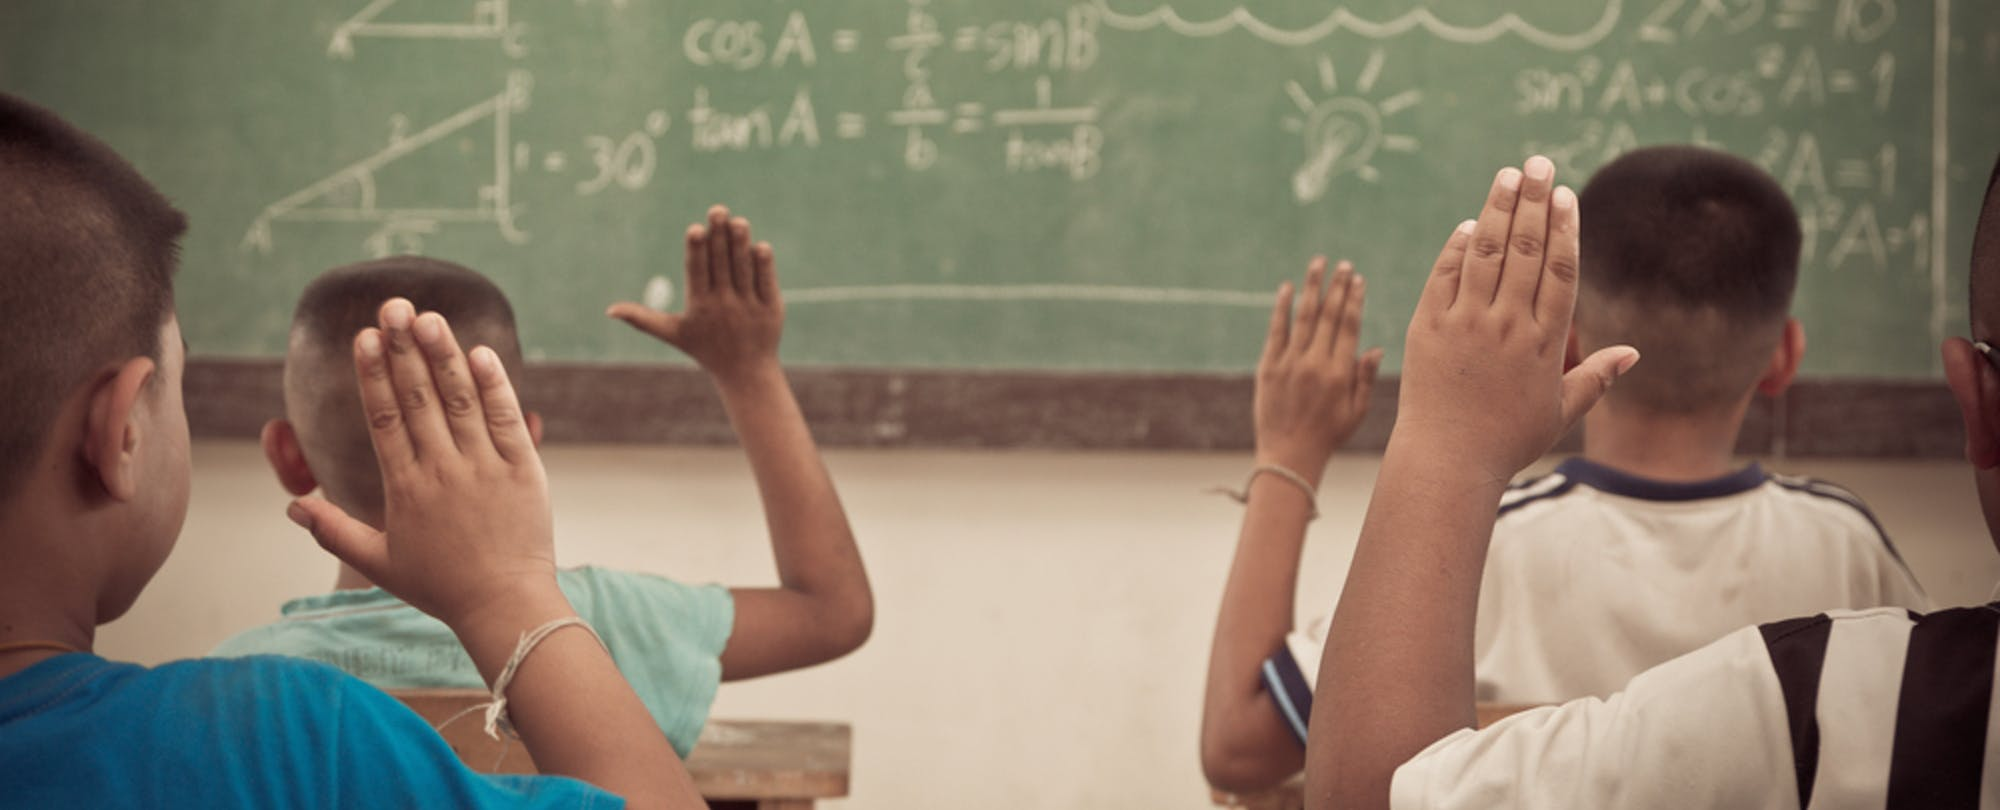 NewSchools Offers $1.5M to Fund Math Tools For Minority and Underserved Students